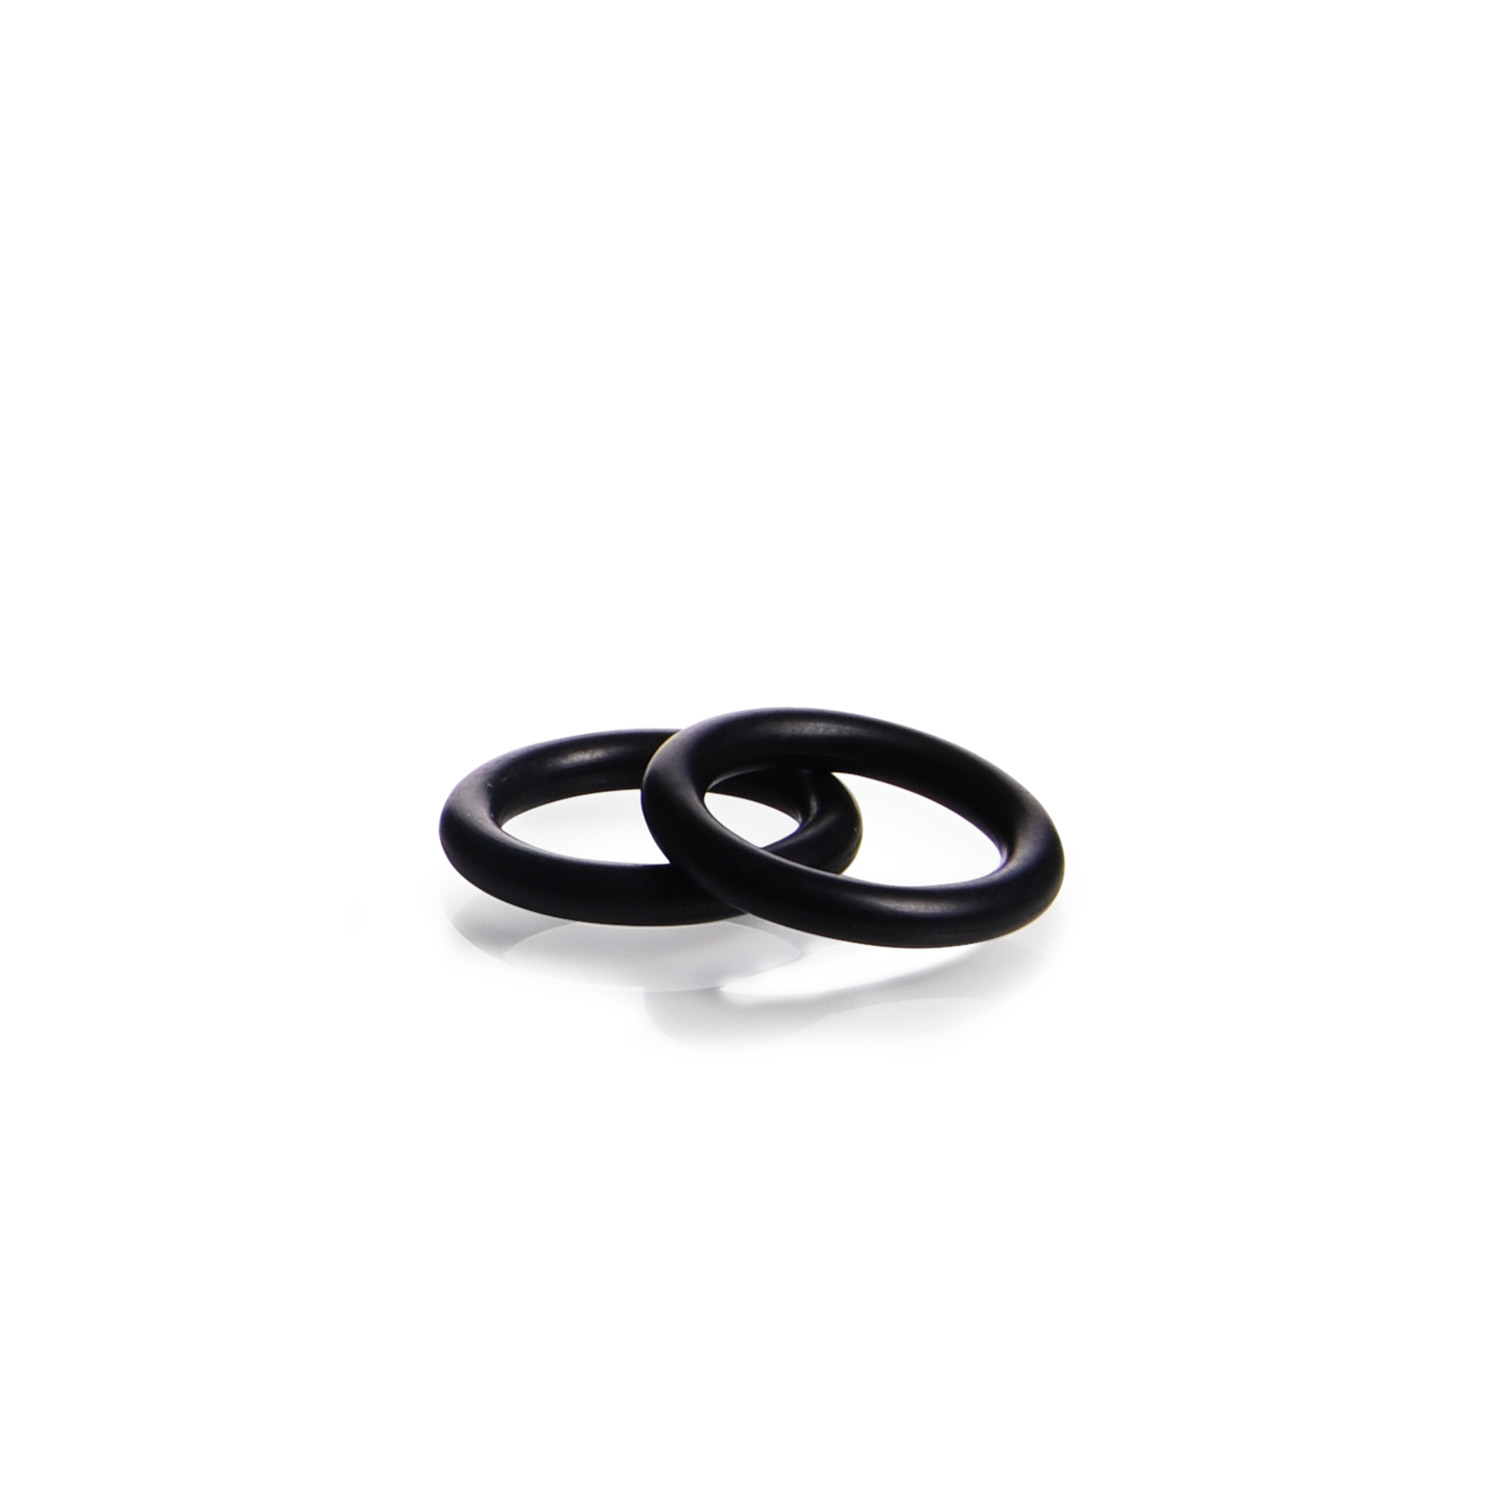 O-Ring, for stopcock keys with groove, NS 29.2